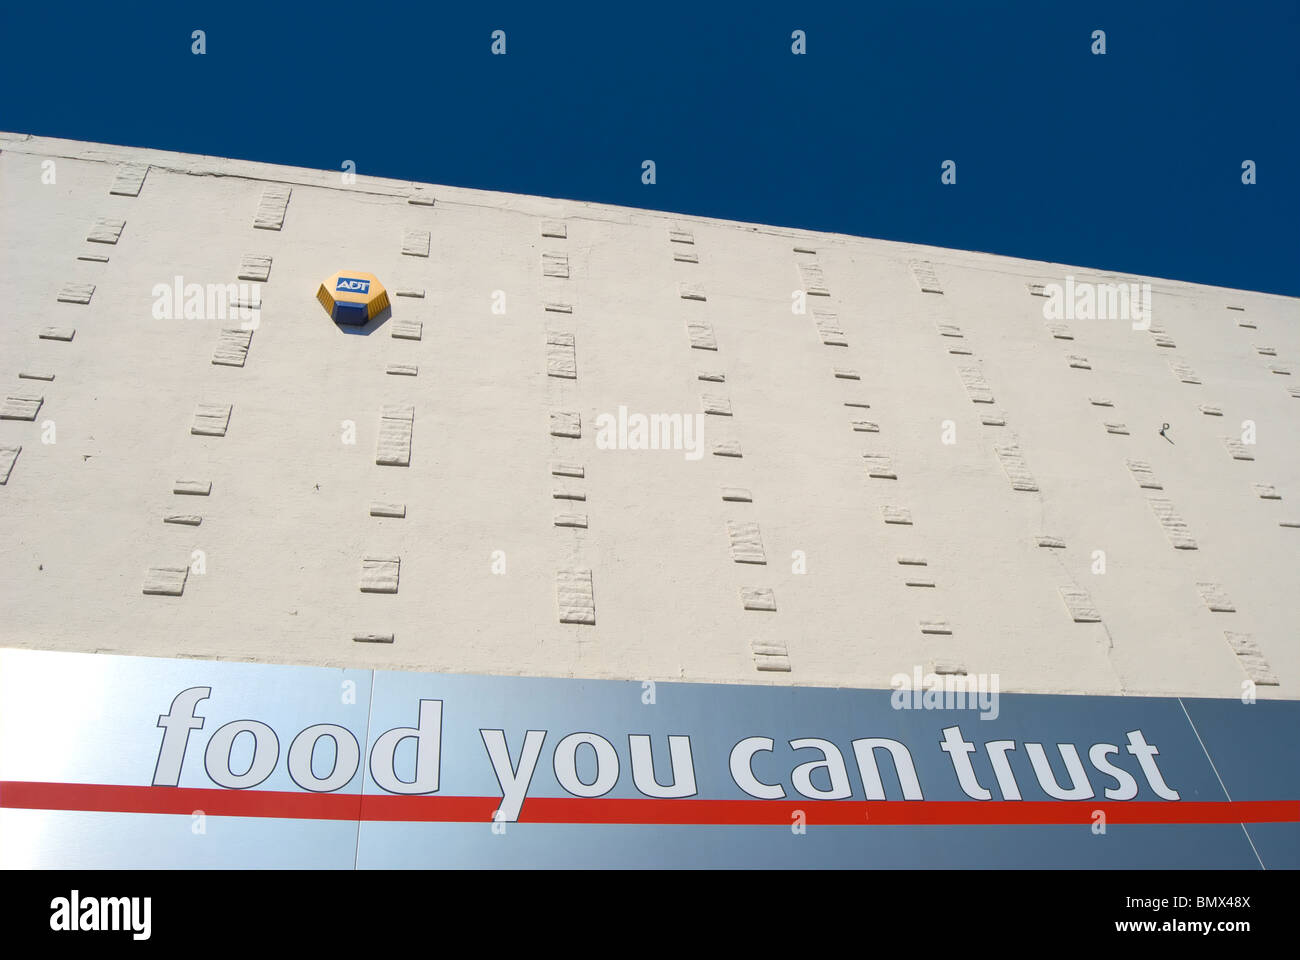 food you can trust, a slogan of the supermarket chain iceland on a branch of the store in whitton, middlesex, england - Stock Image